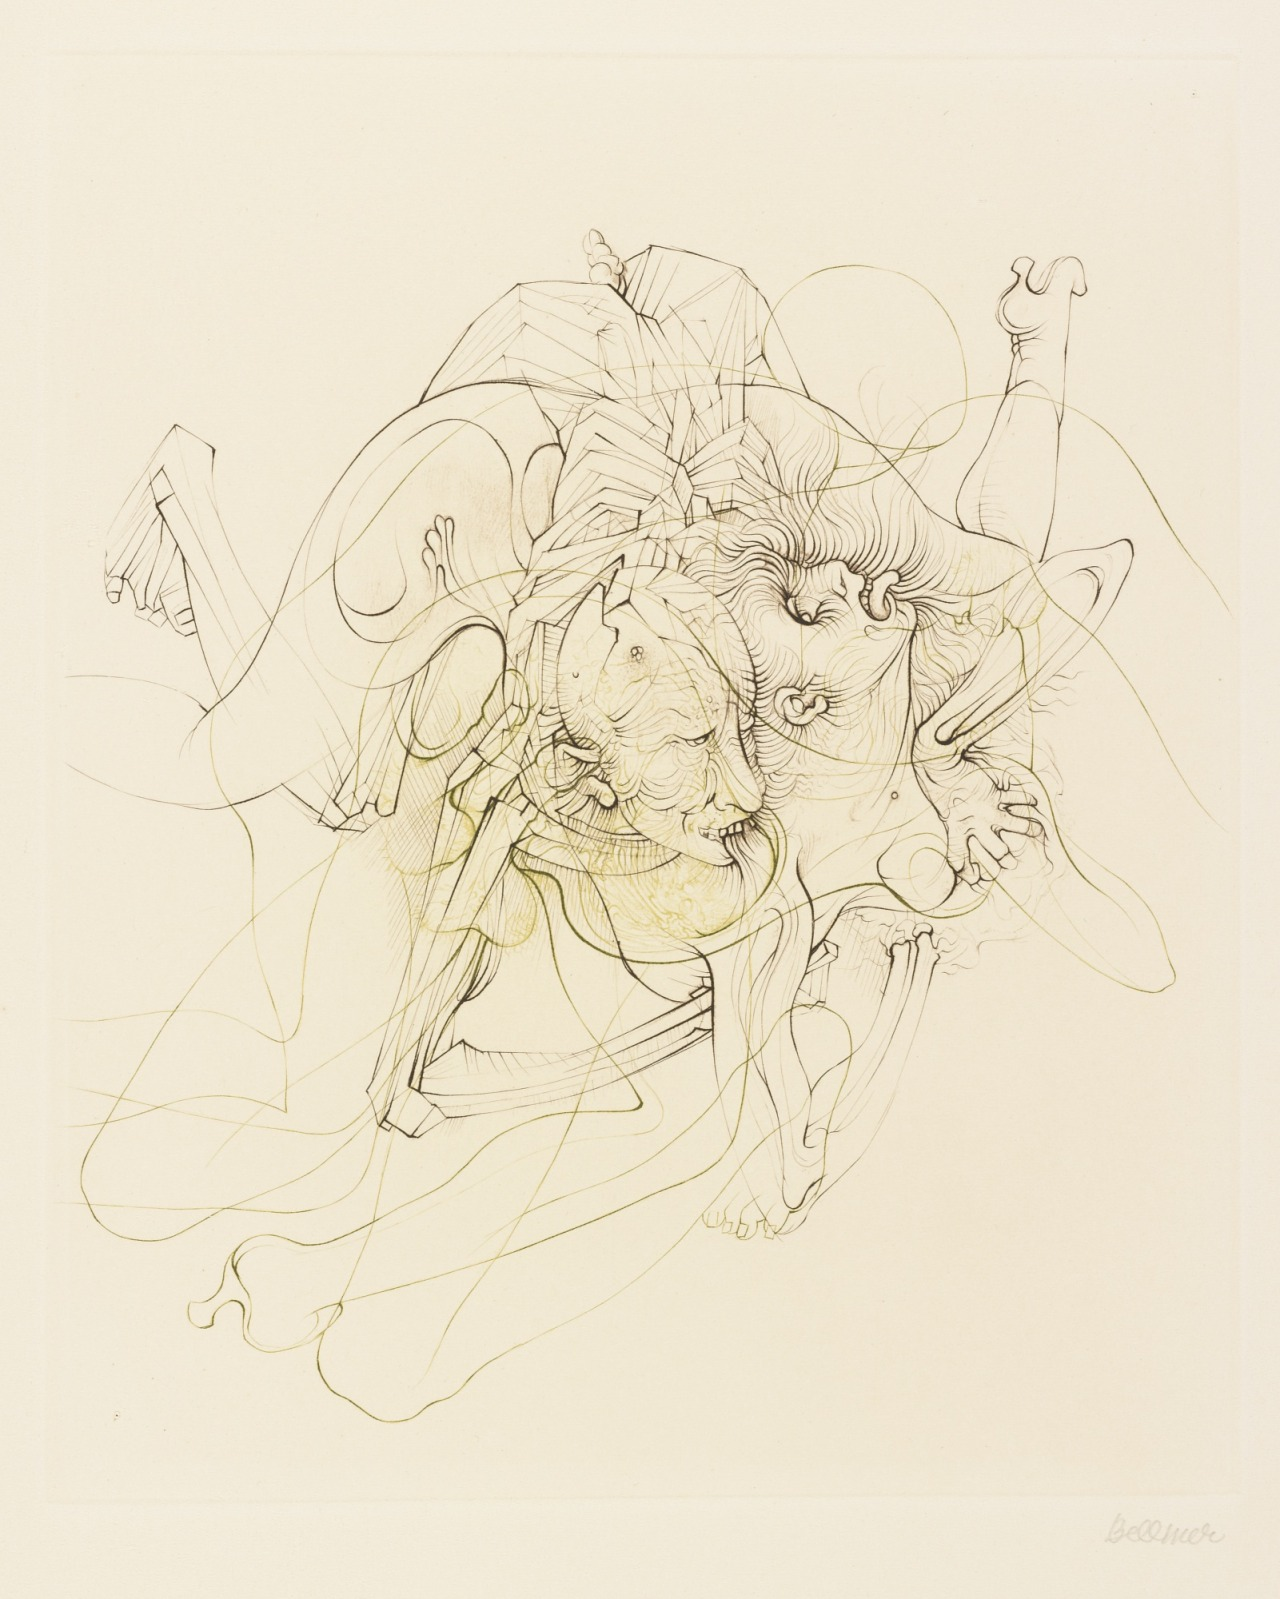 mrkiki:  Hans Bellmer Petit Traite De Morale. 1968 Printed Etchings 380 x 284 mm / 15 x 11 1/4 in VIA